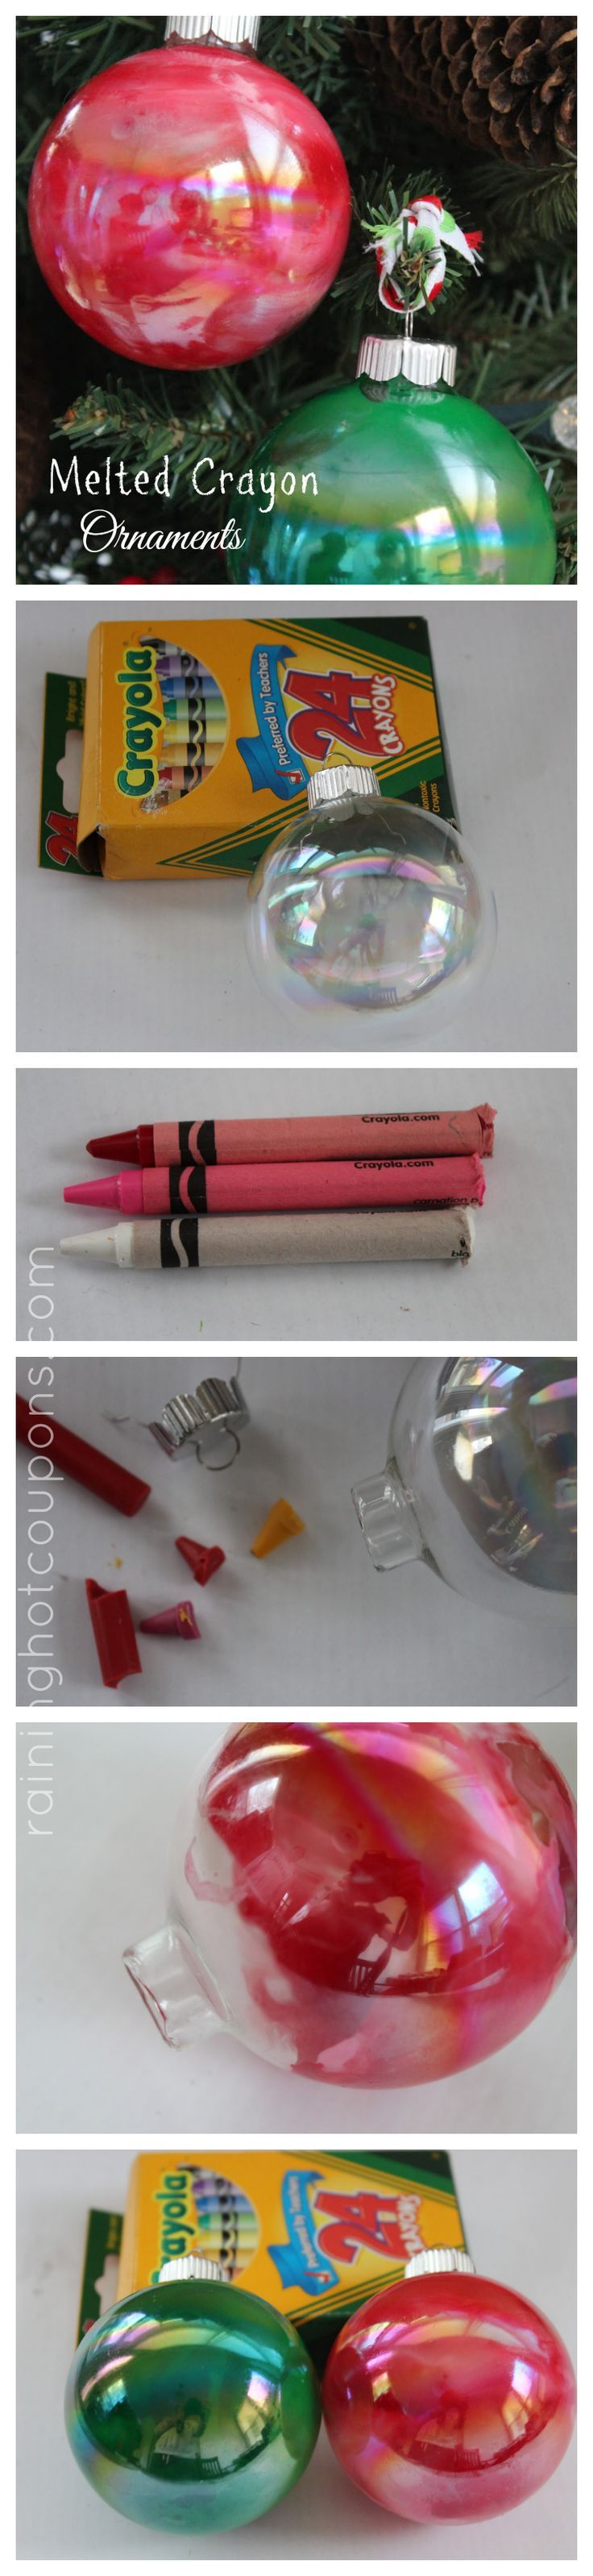 Melted Crayon Ornaments. I just did this with the girls. Lots of fun!